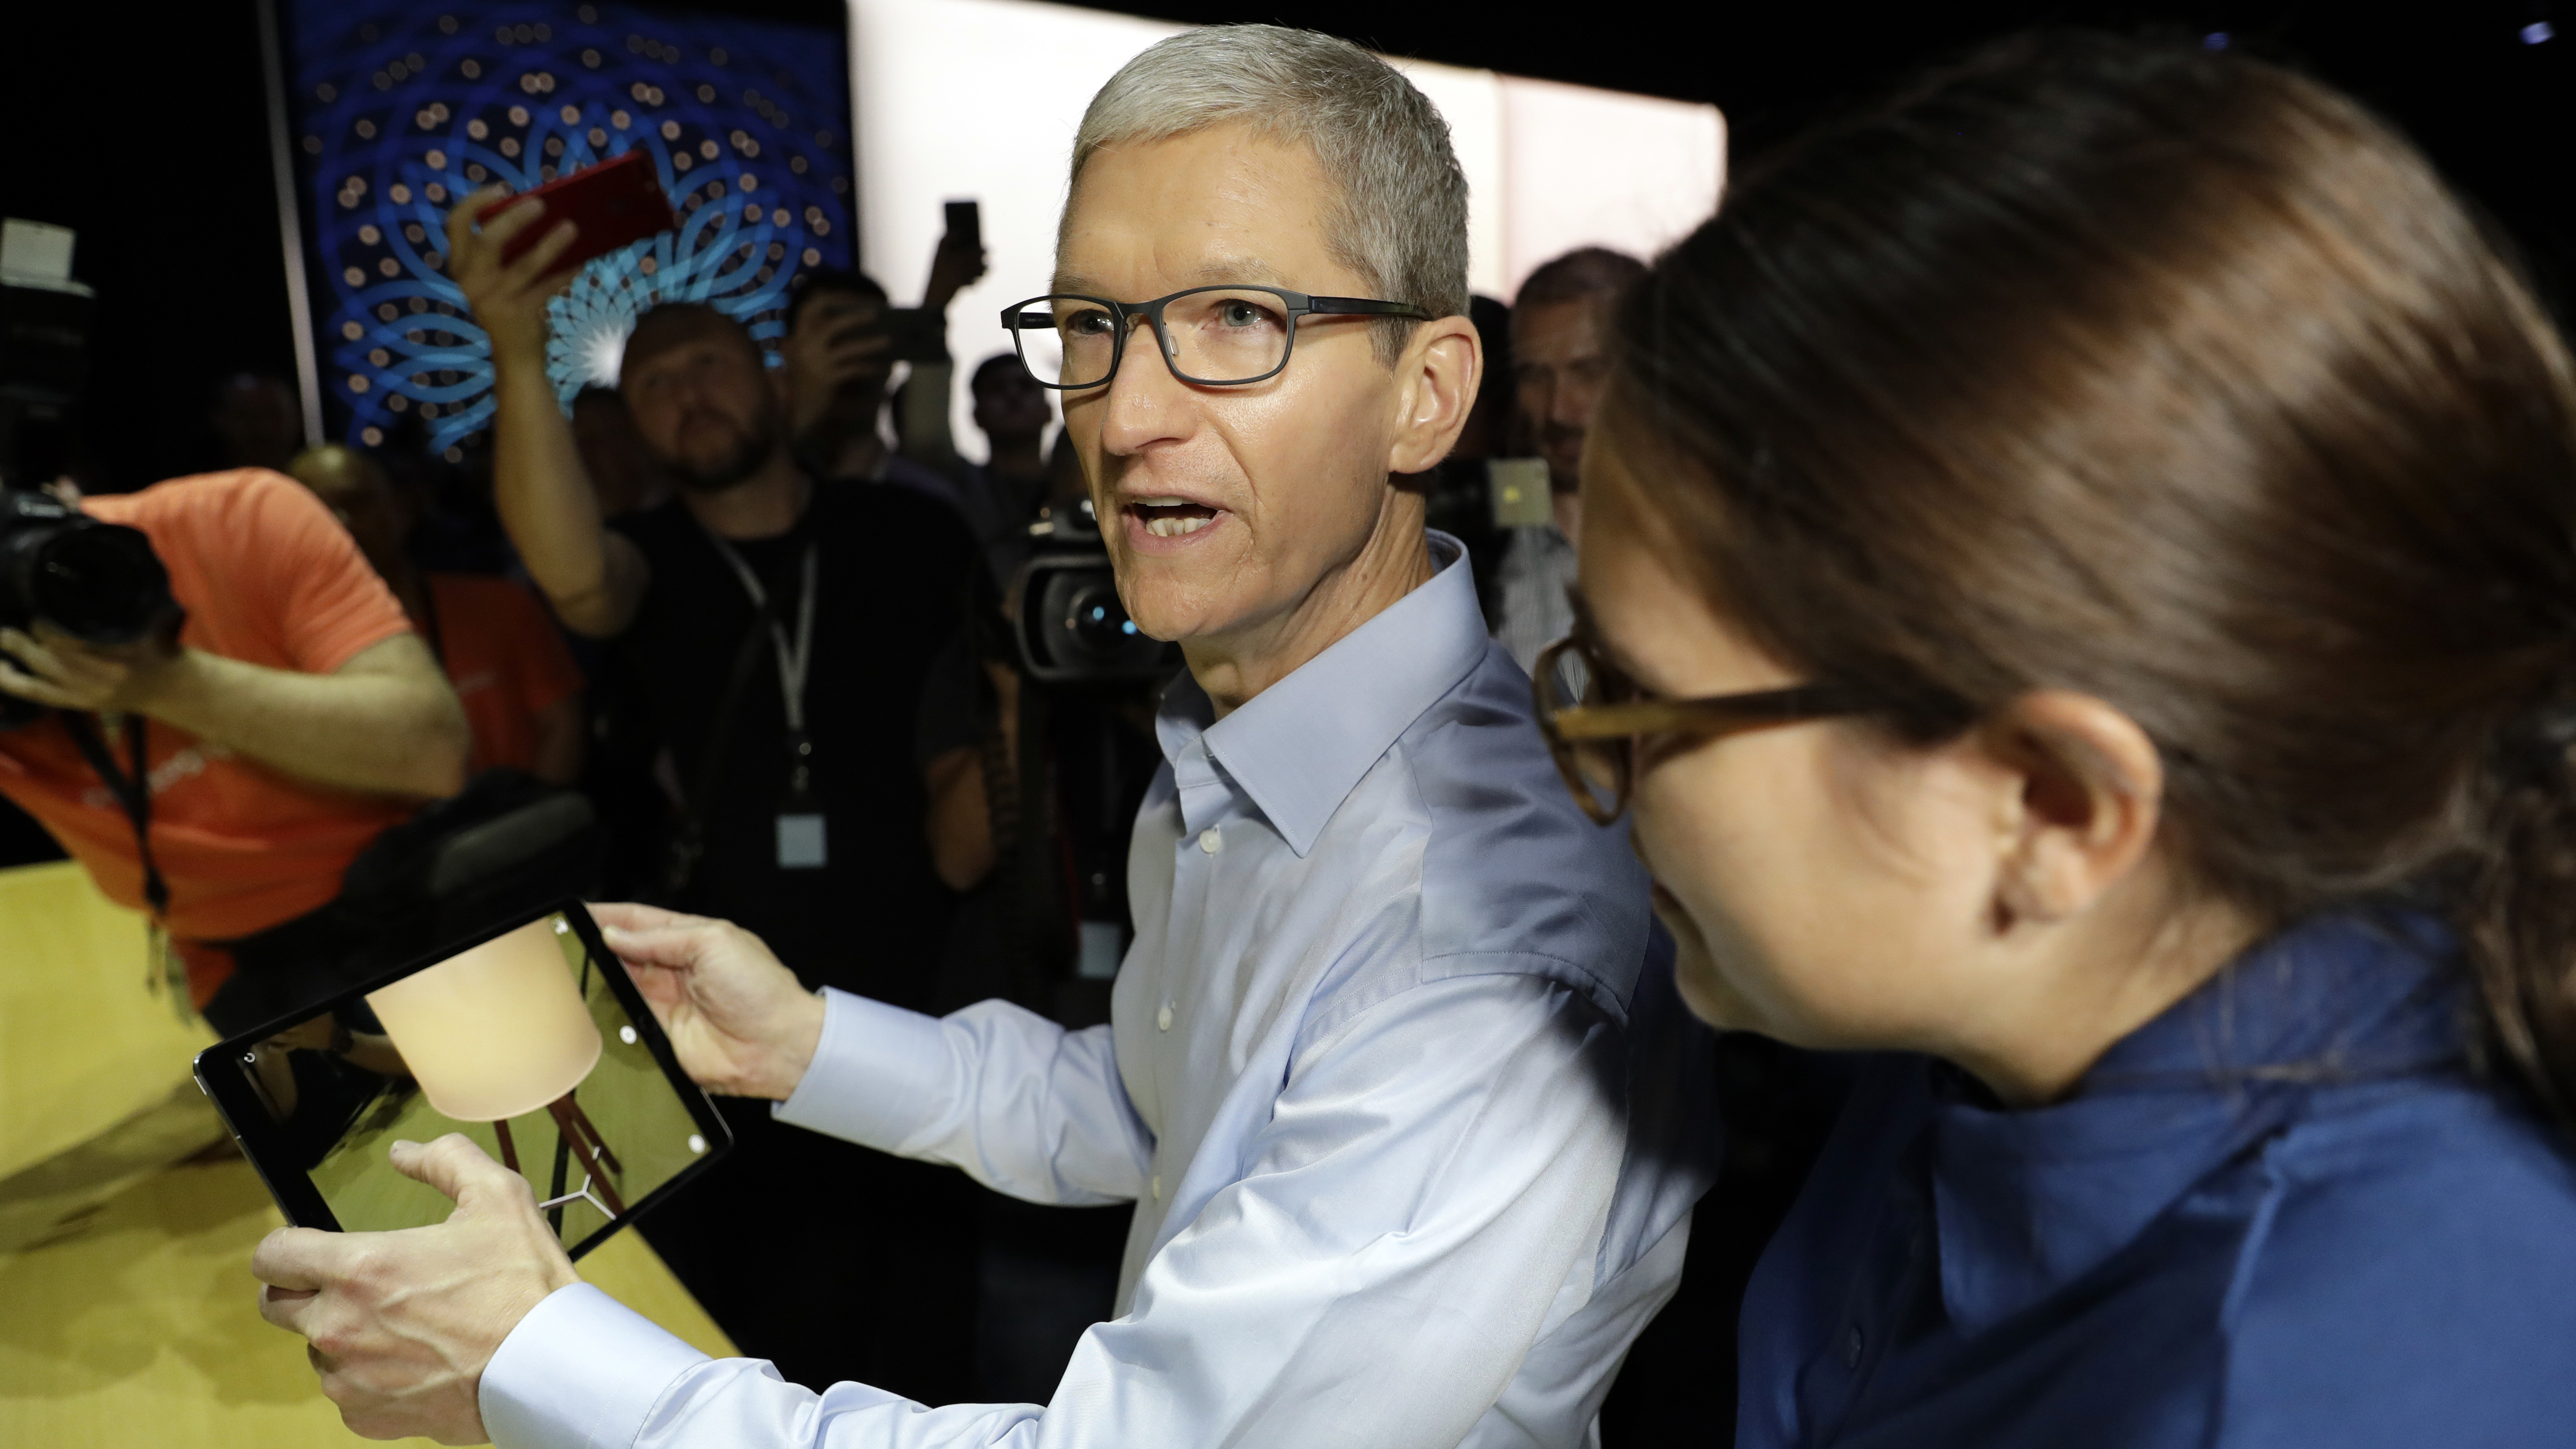 Apple CEO Tim Cook shows an iPad Pro during an announcement of new products at the Apple Worldwide Developers Conference Monday, June 5, 2017, in San Jose , Calif. (AP Photo/Marcio Jose Sanchez)